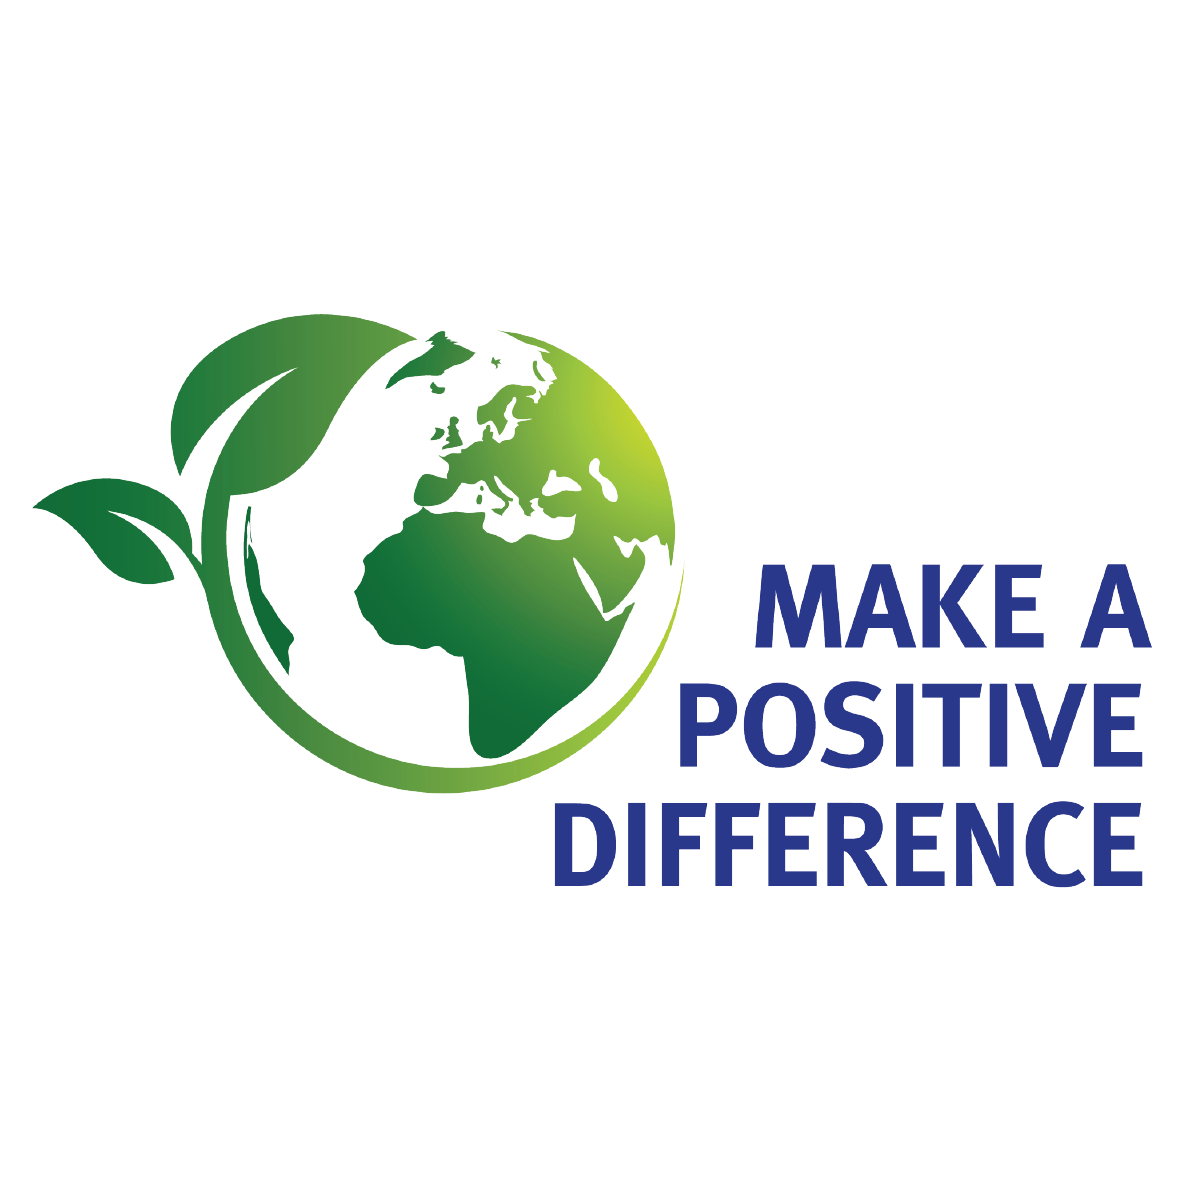 Making a positive difference